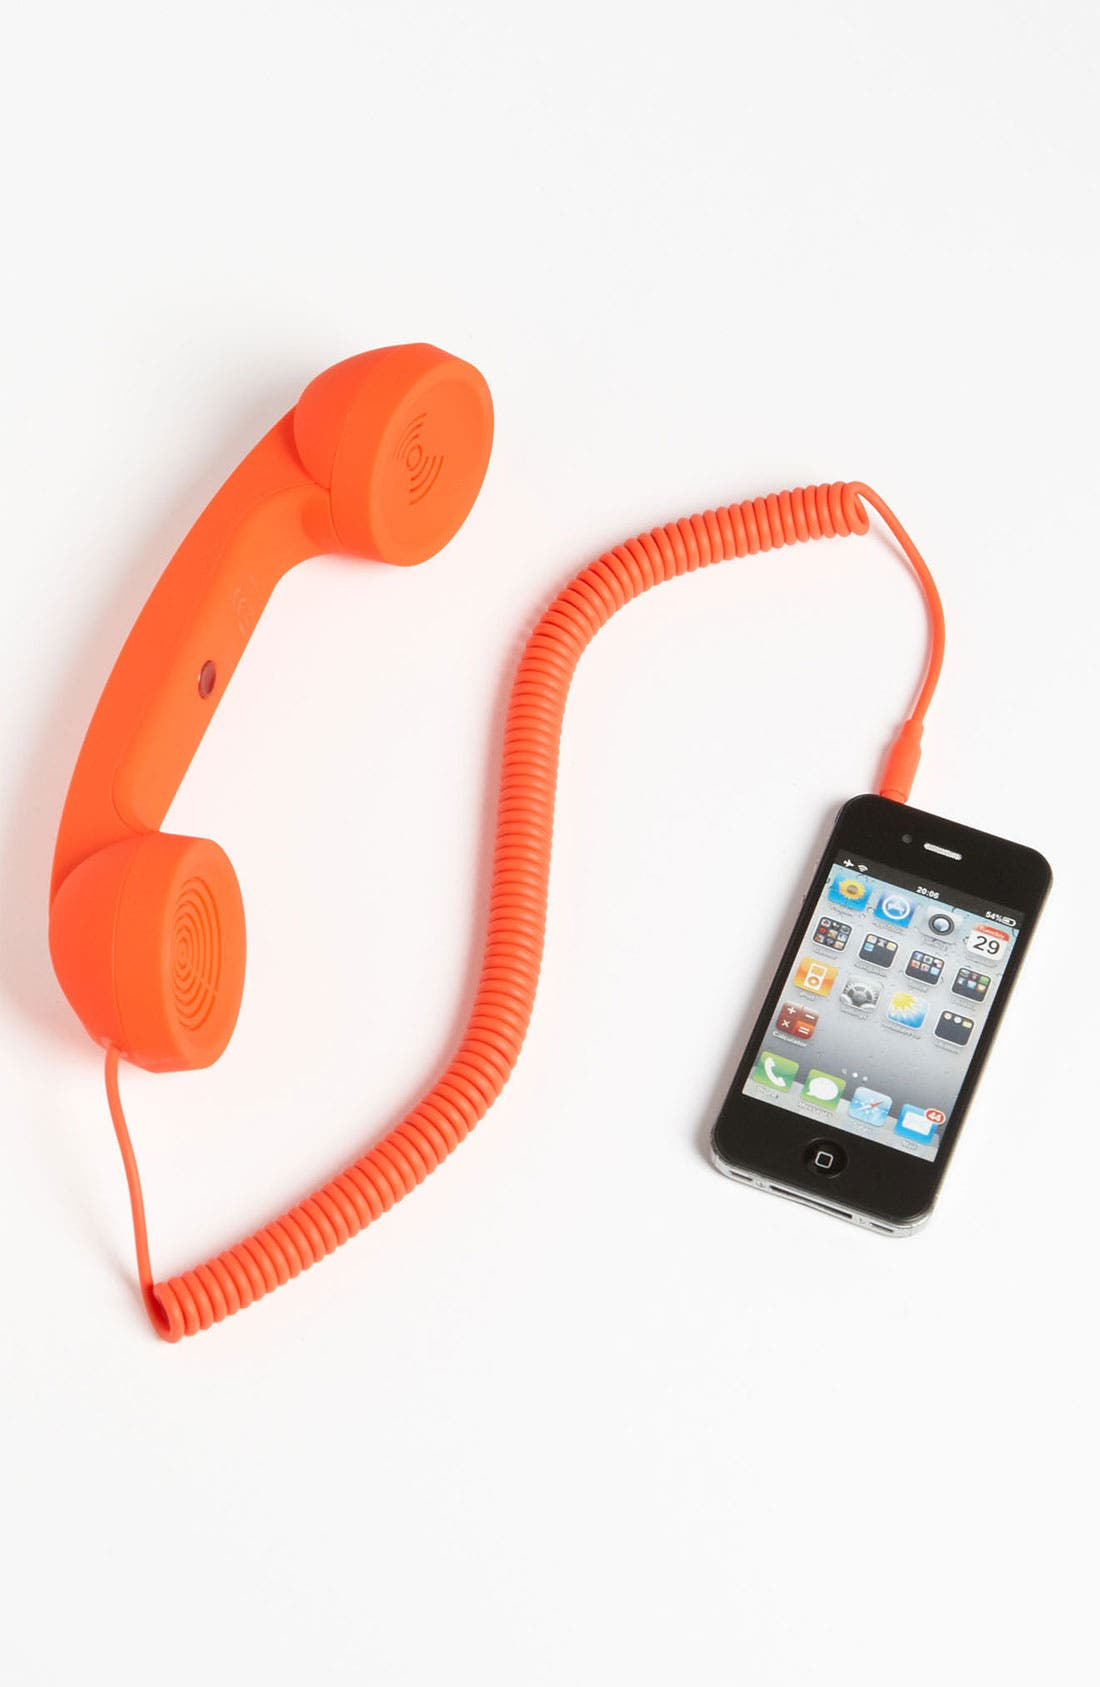 Main Image - Native Union 'Neon Pop Phone' Handset